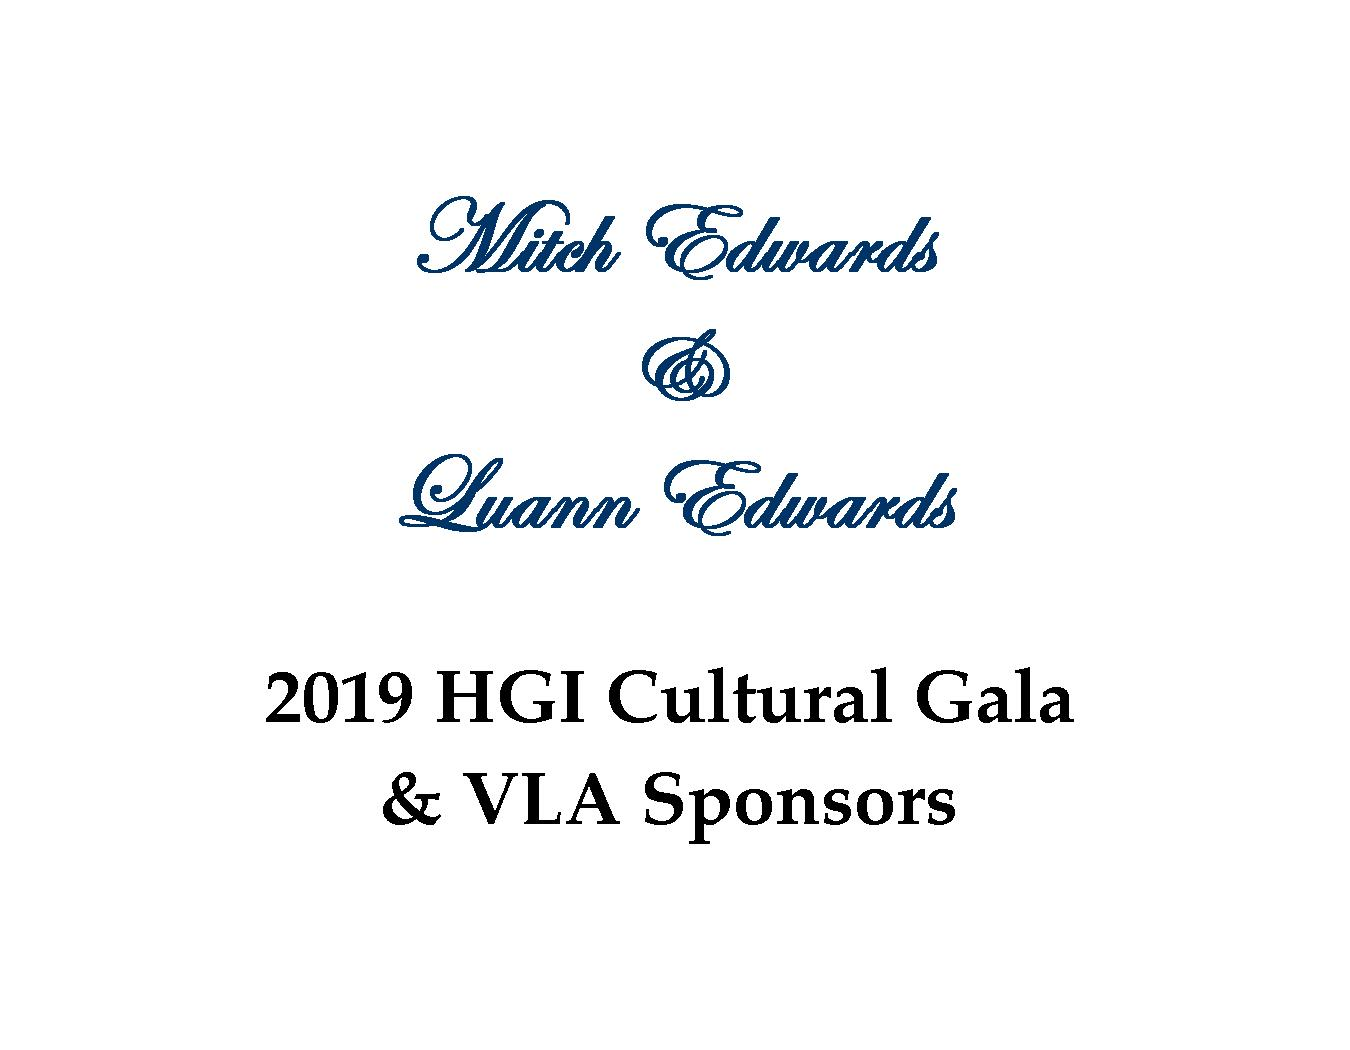 Mitch_Luann Edwards_Sponsors2019.jpg